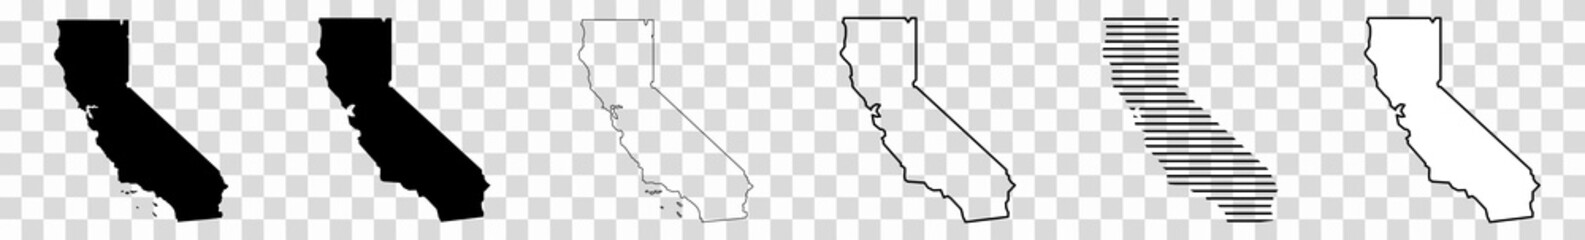 California Map Black | State Border | United States | US America | Transparent Isolated | Variations Fototapete